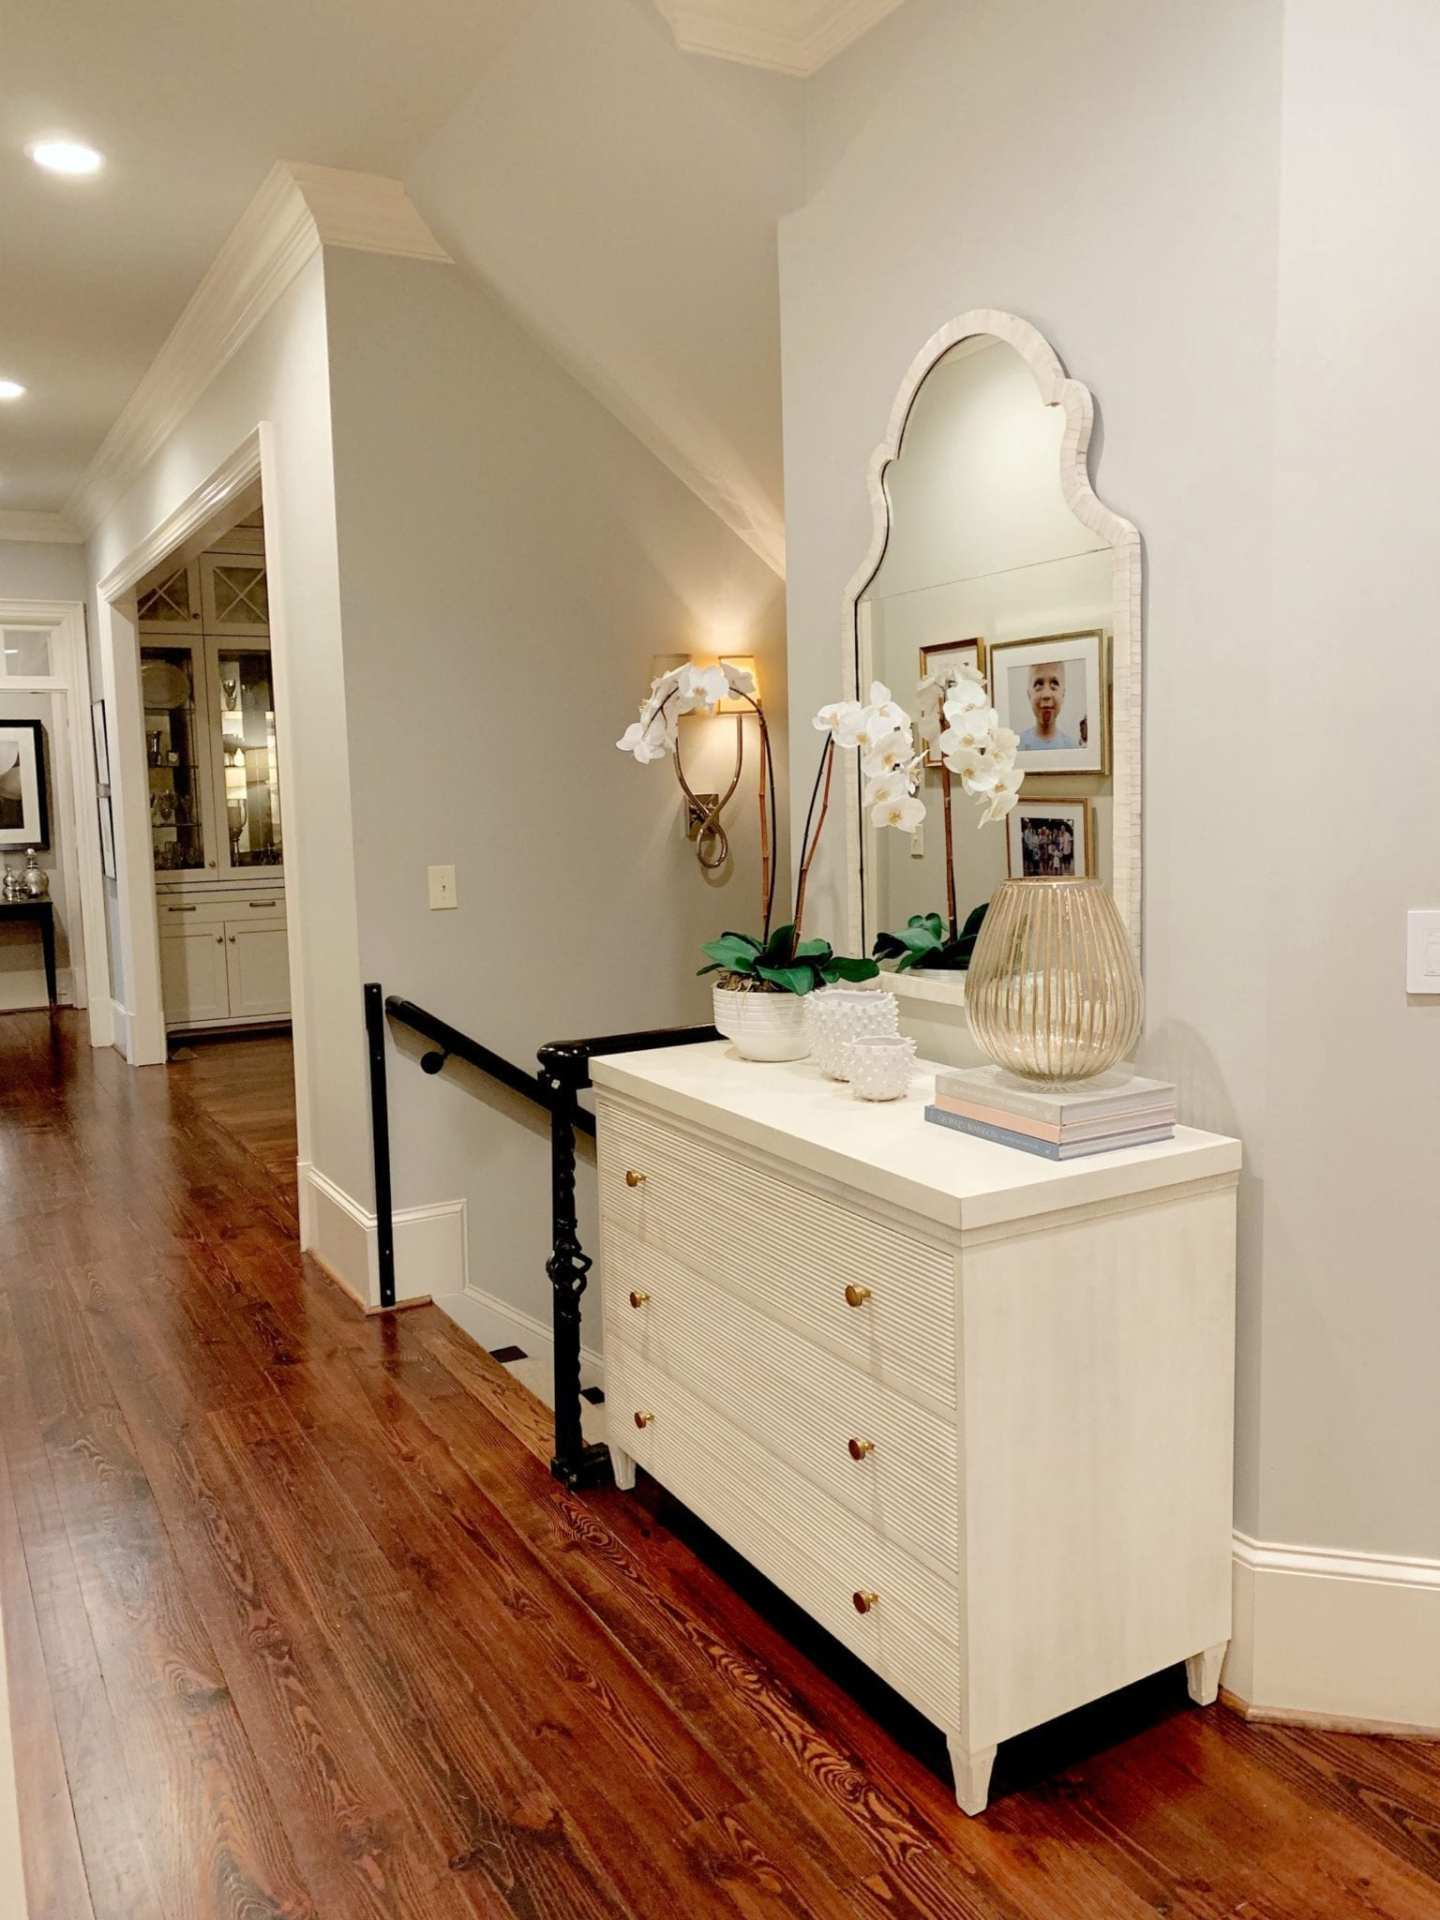 Hallway Decor. Hickory White Chest by Suzanne Kasler in hallway entryway. Ivory bone wall mirror.